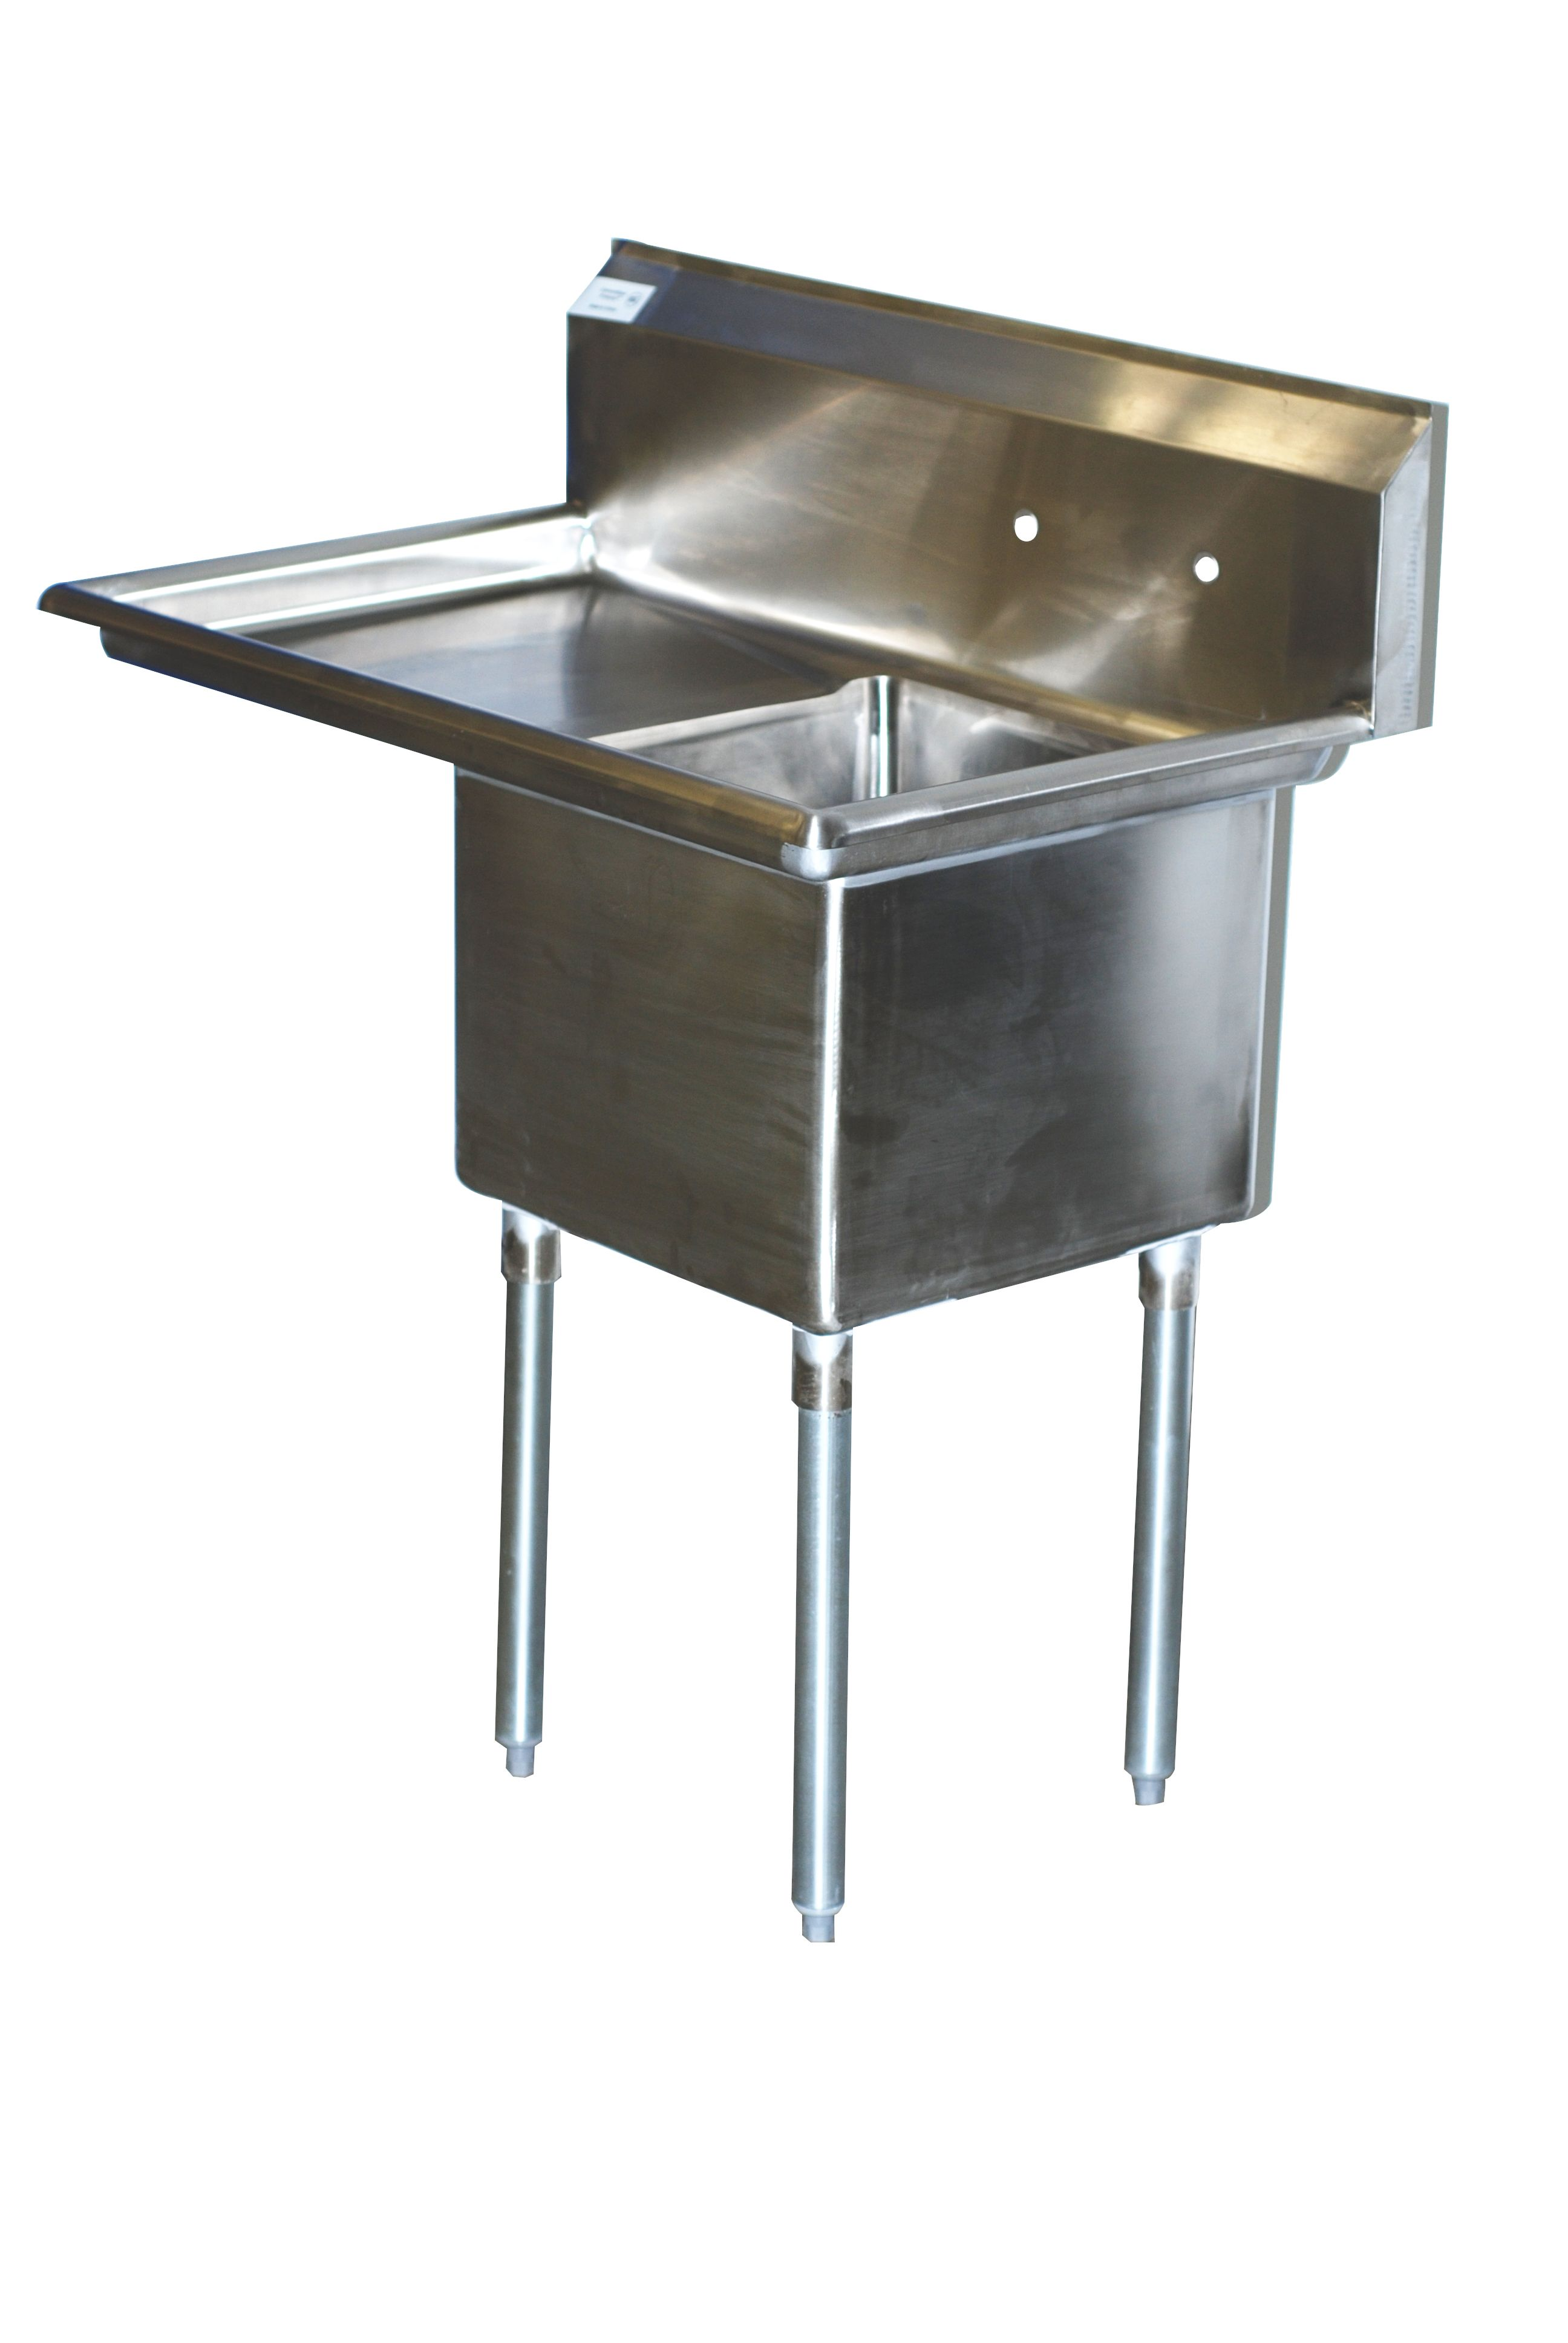 kitchen drainboard photo attractive sinks affordable of modern home sink with